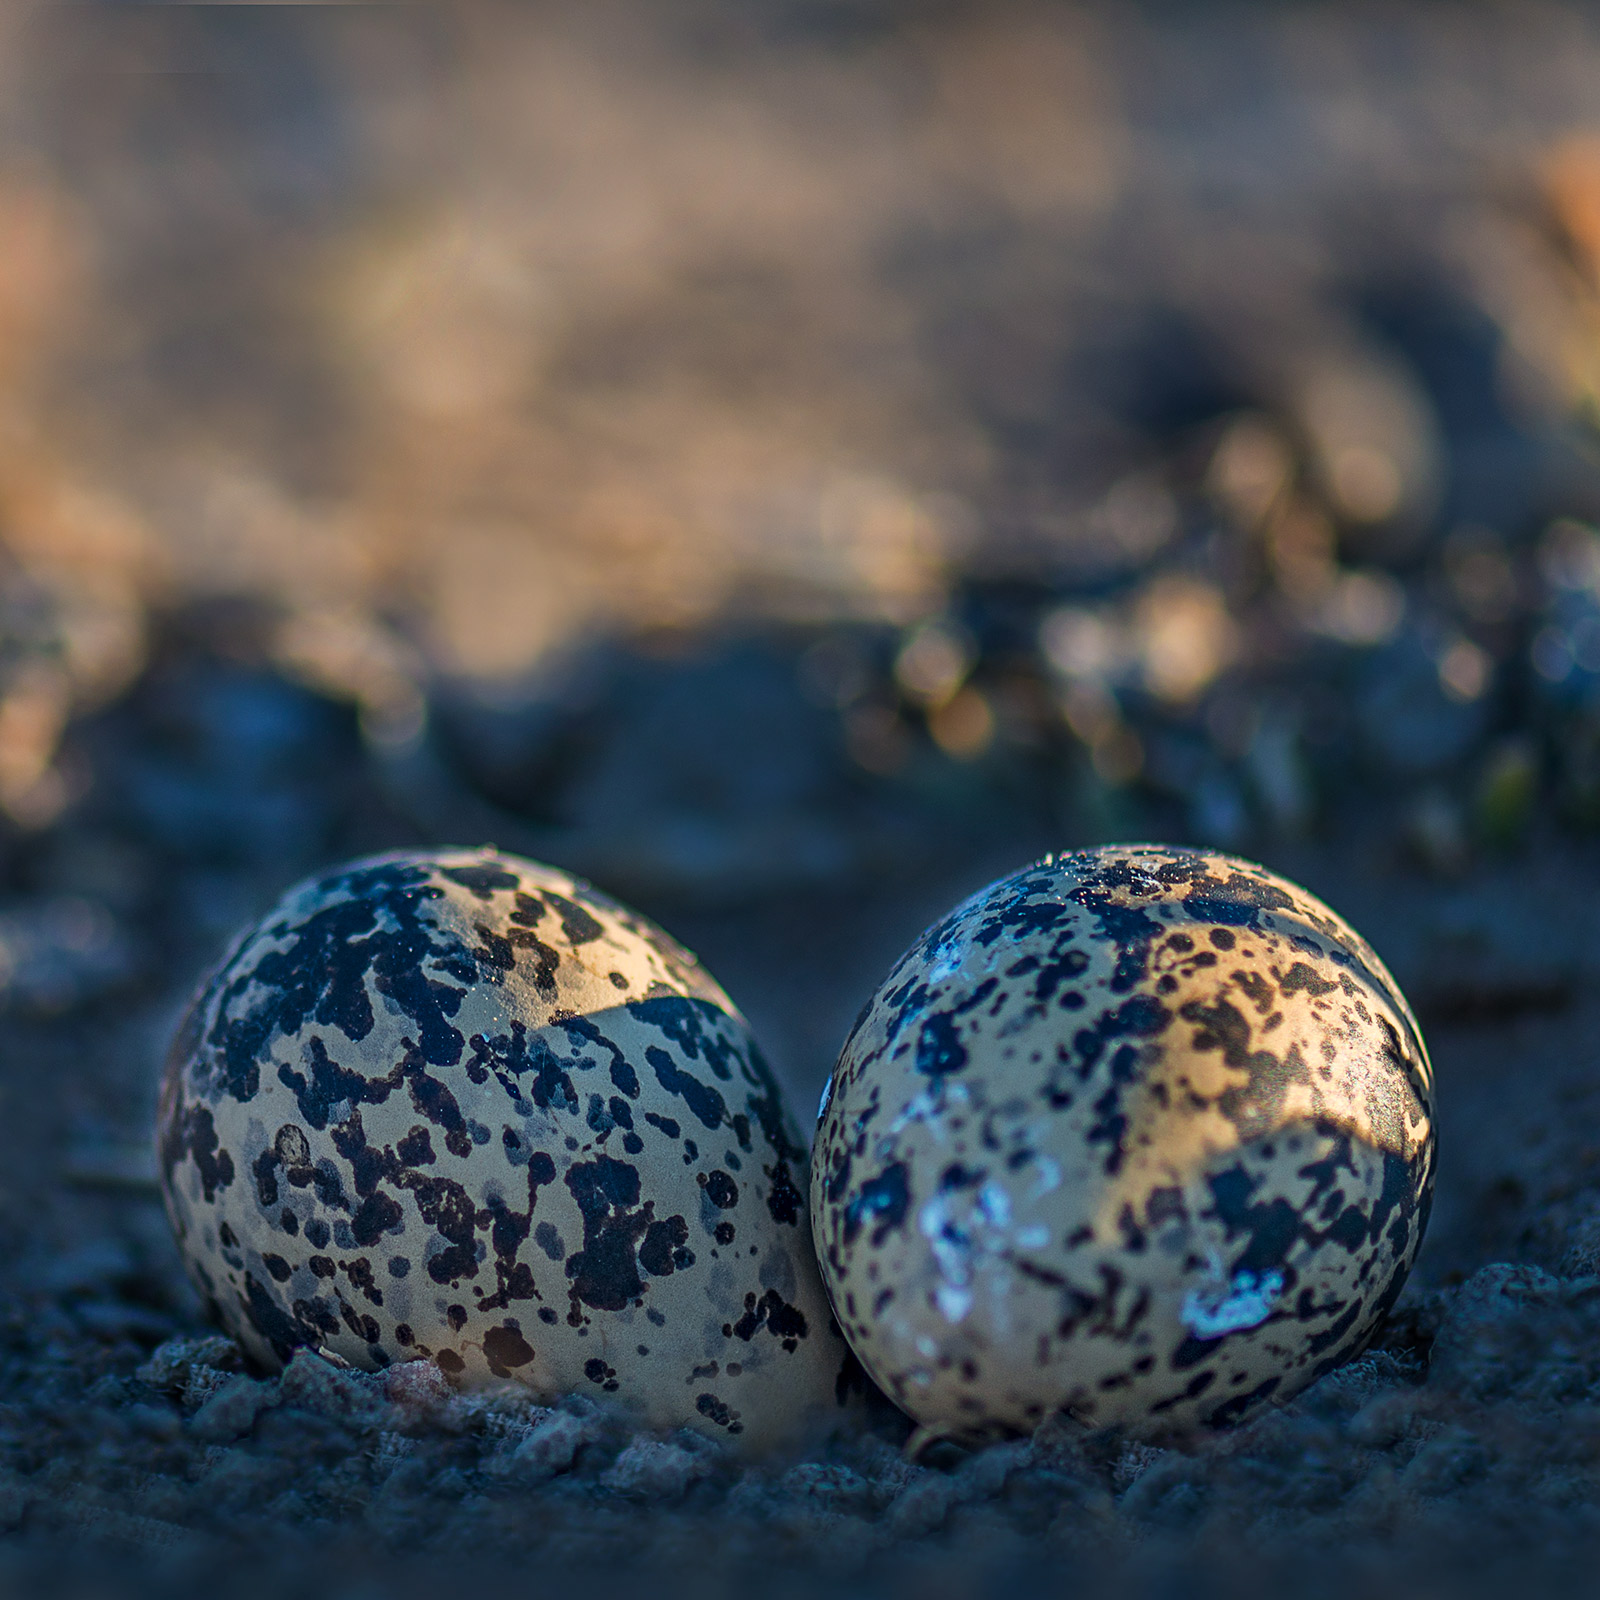 Two Crowned Lapwing eggs.